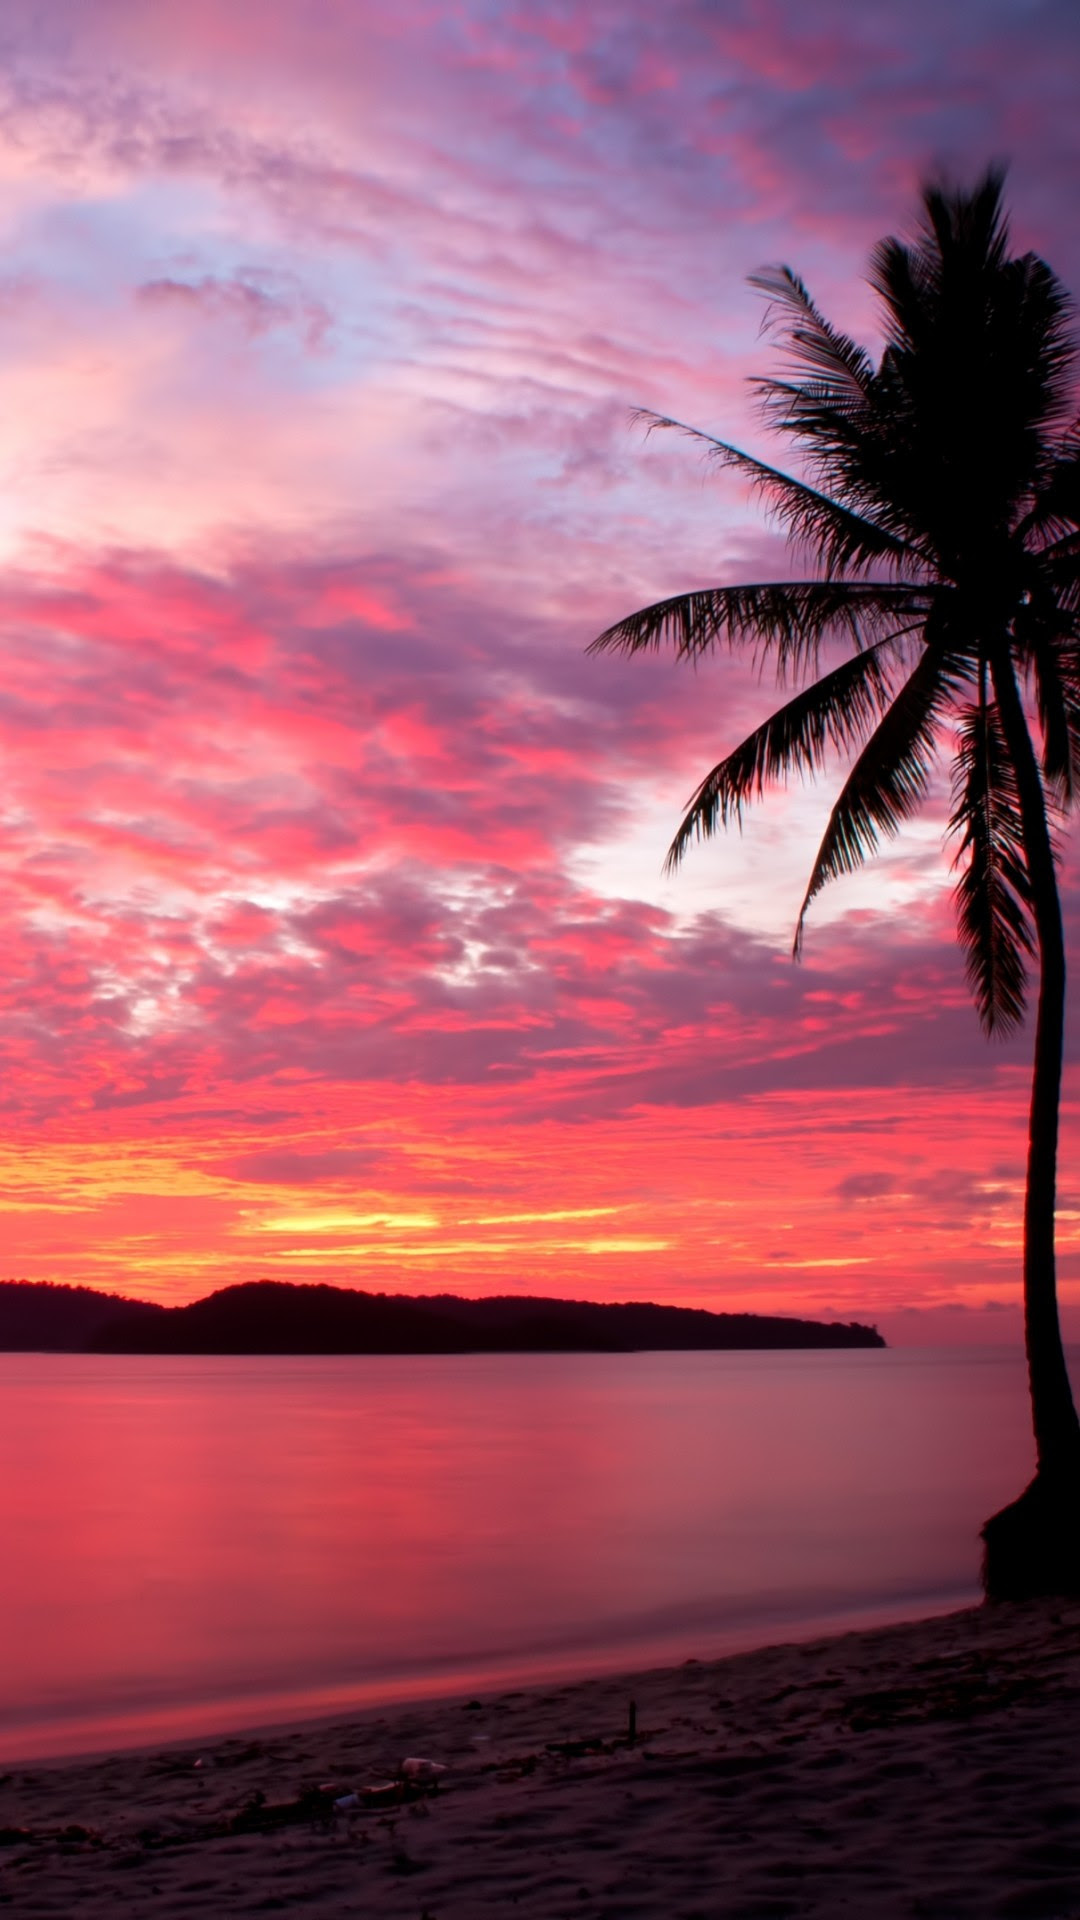 Download 1080x1920 Malaysia, Sunset, Beach, Palms, Island ...